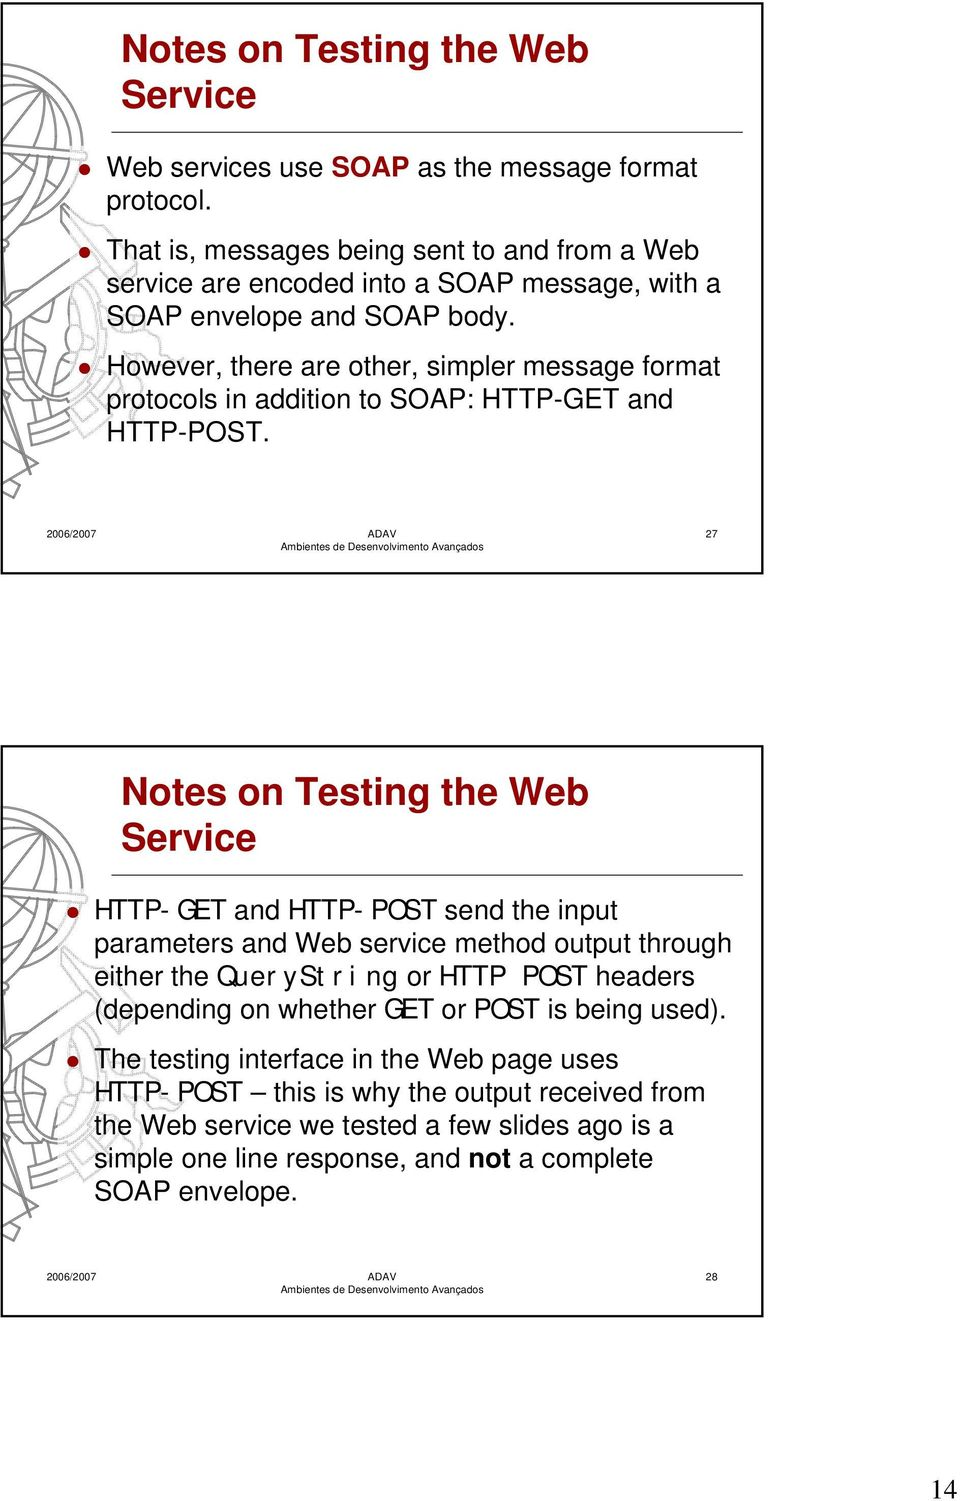 However, there are other, simpler message format protocols in addition to SOAP: HTTP-GET and HTTP-POST.